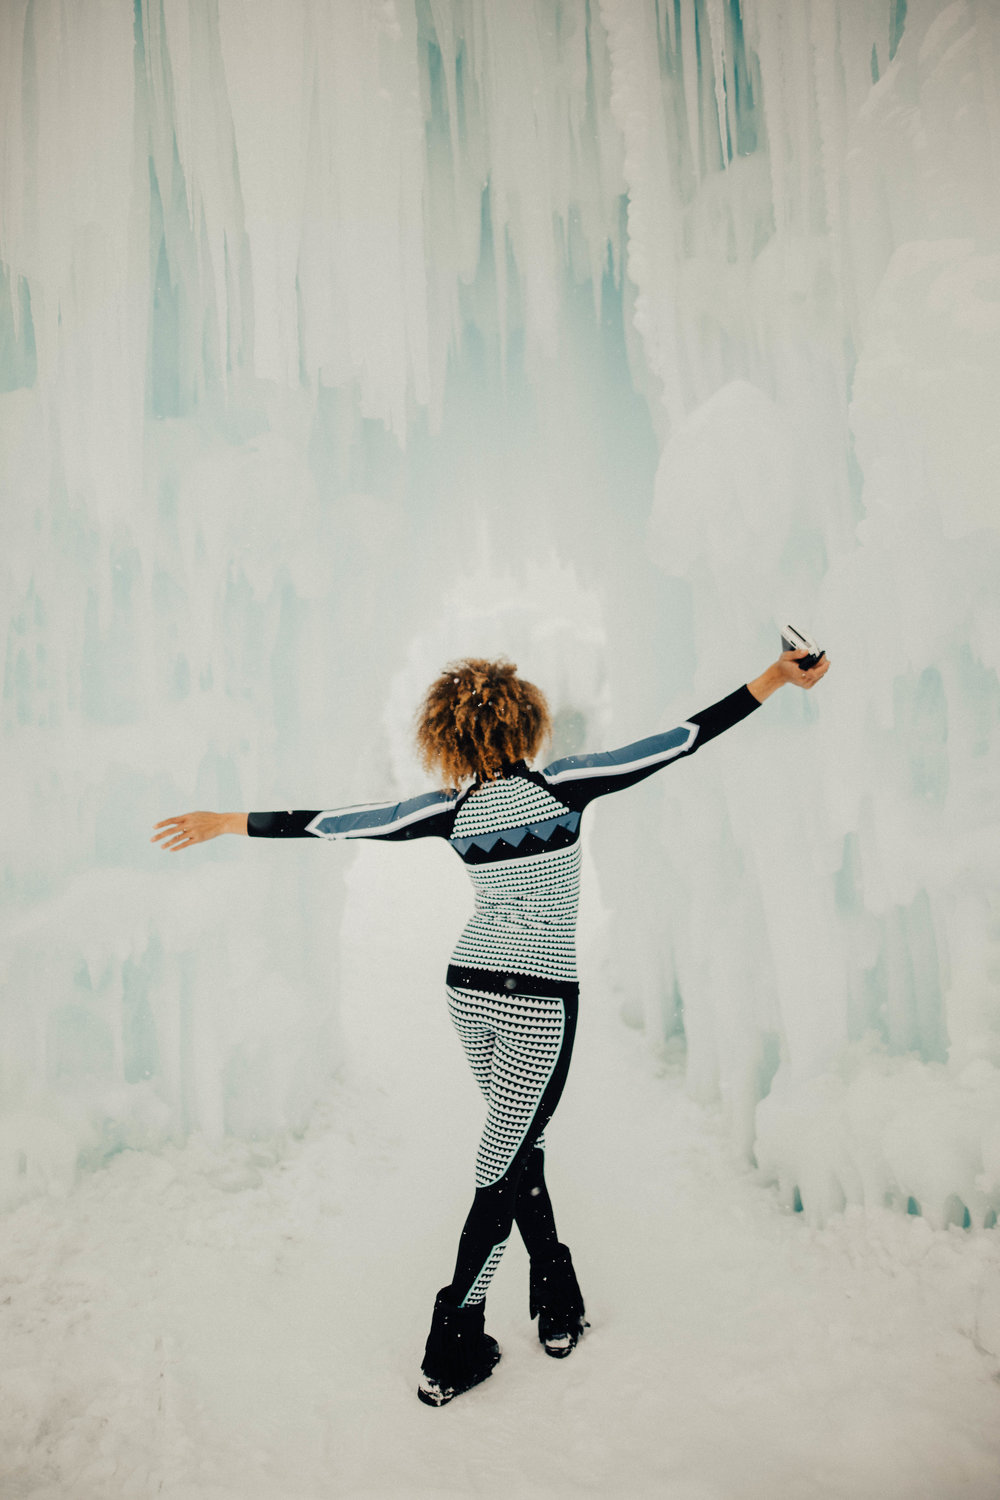 Influencer @MomCrushMonday dancing like nobody is watching at the Ice Castles wearing Sweaty Betty.